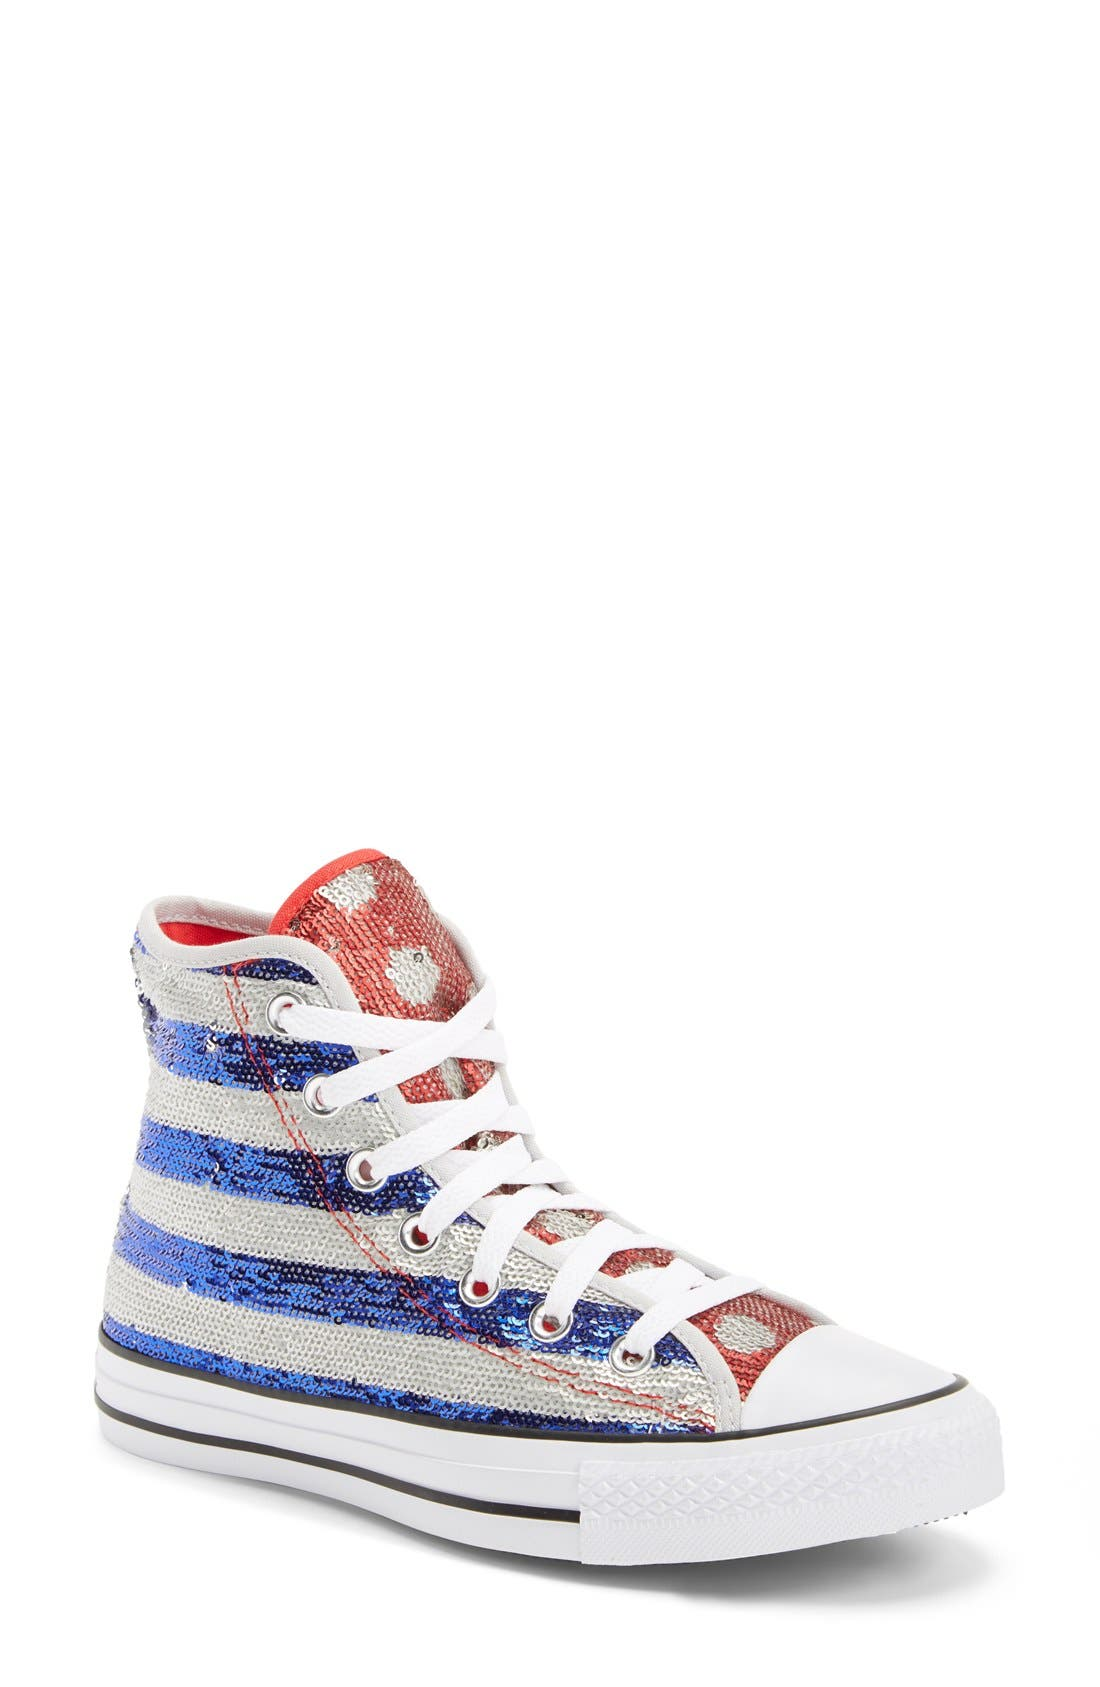 Alternate Image 1 Selected - Converse Chuck Taylor® All Star® Sequin Flag High Top Sneaker (Women)